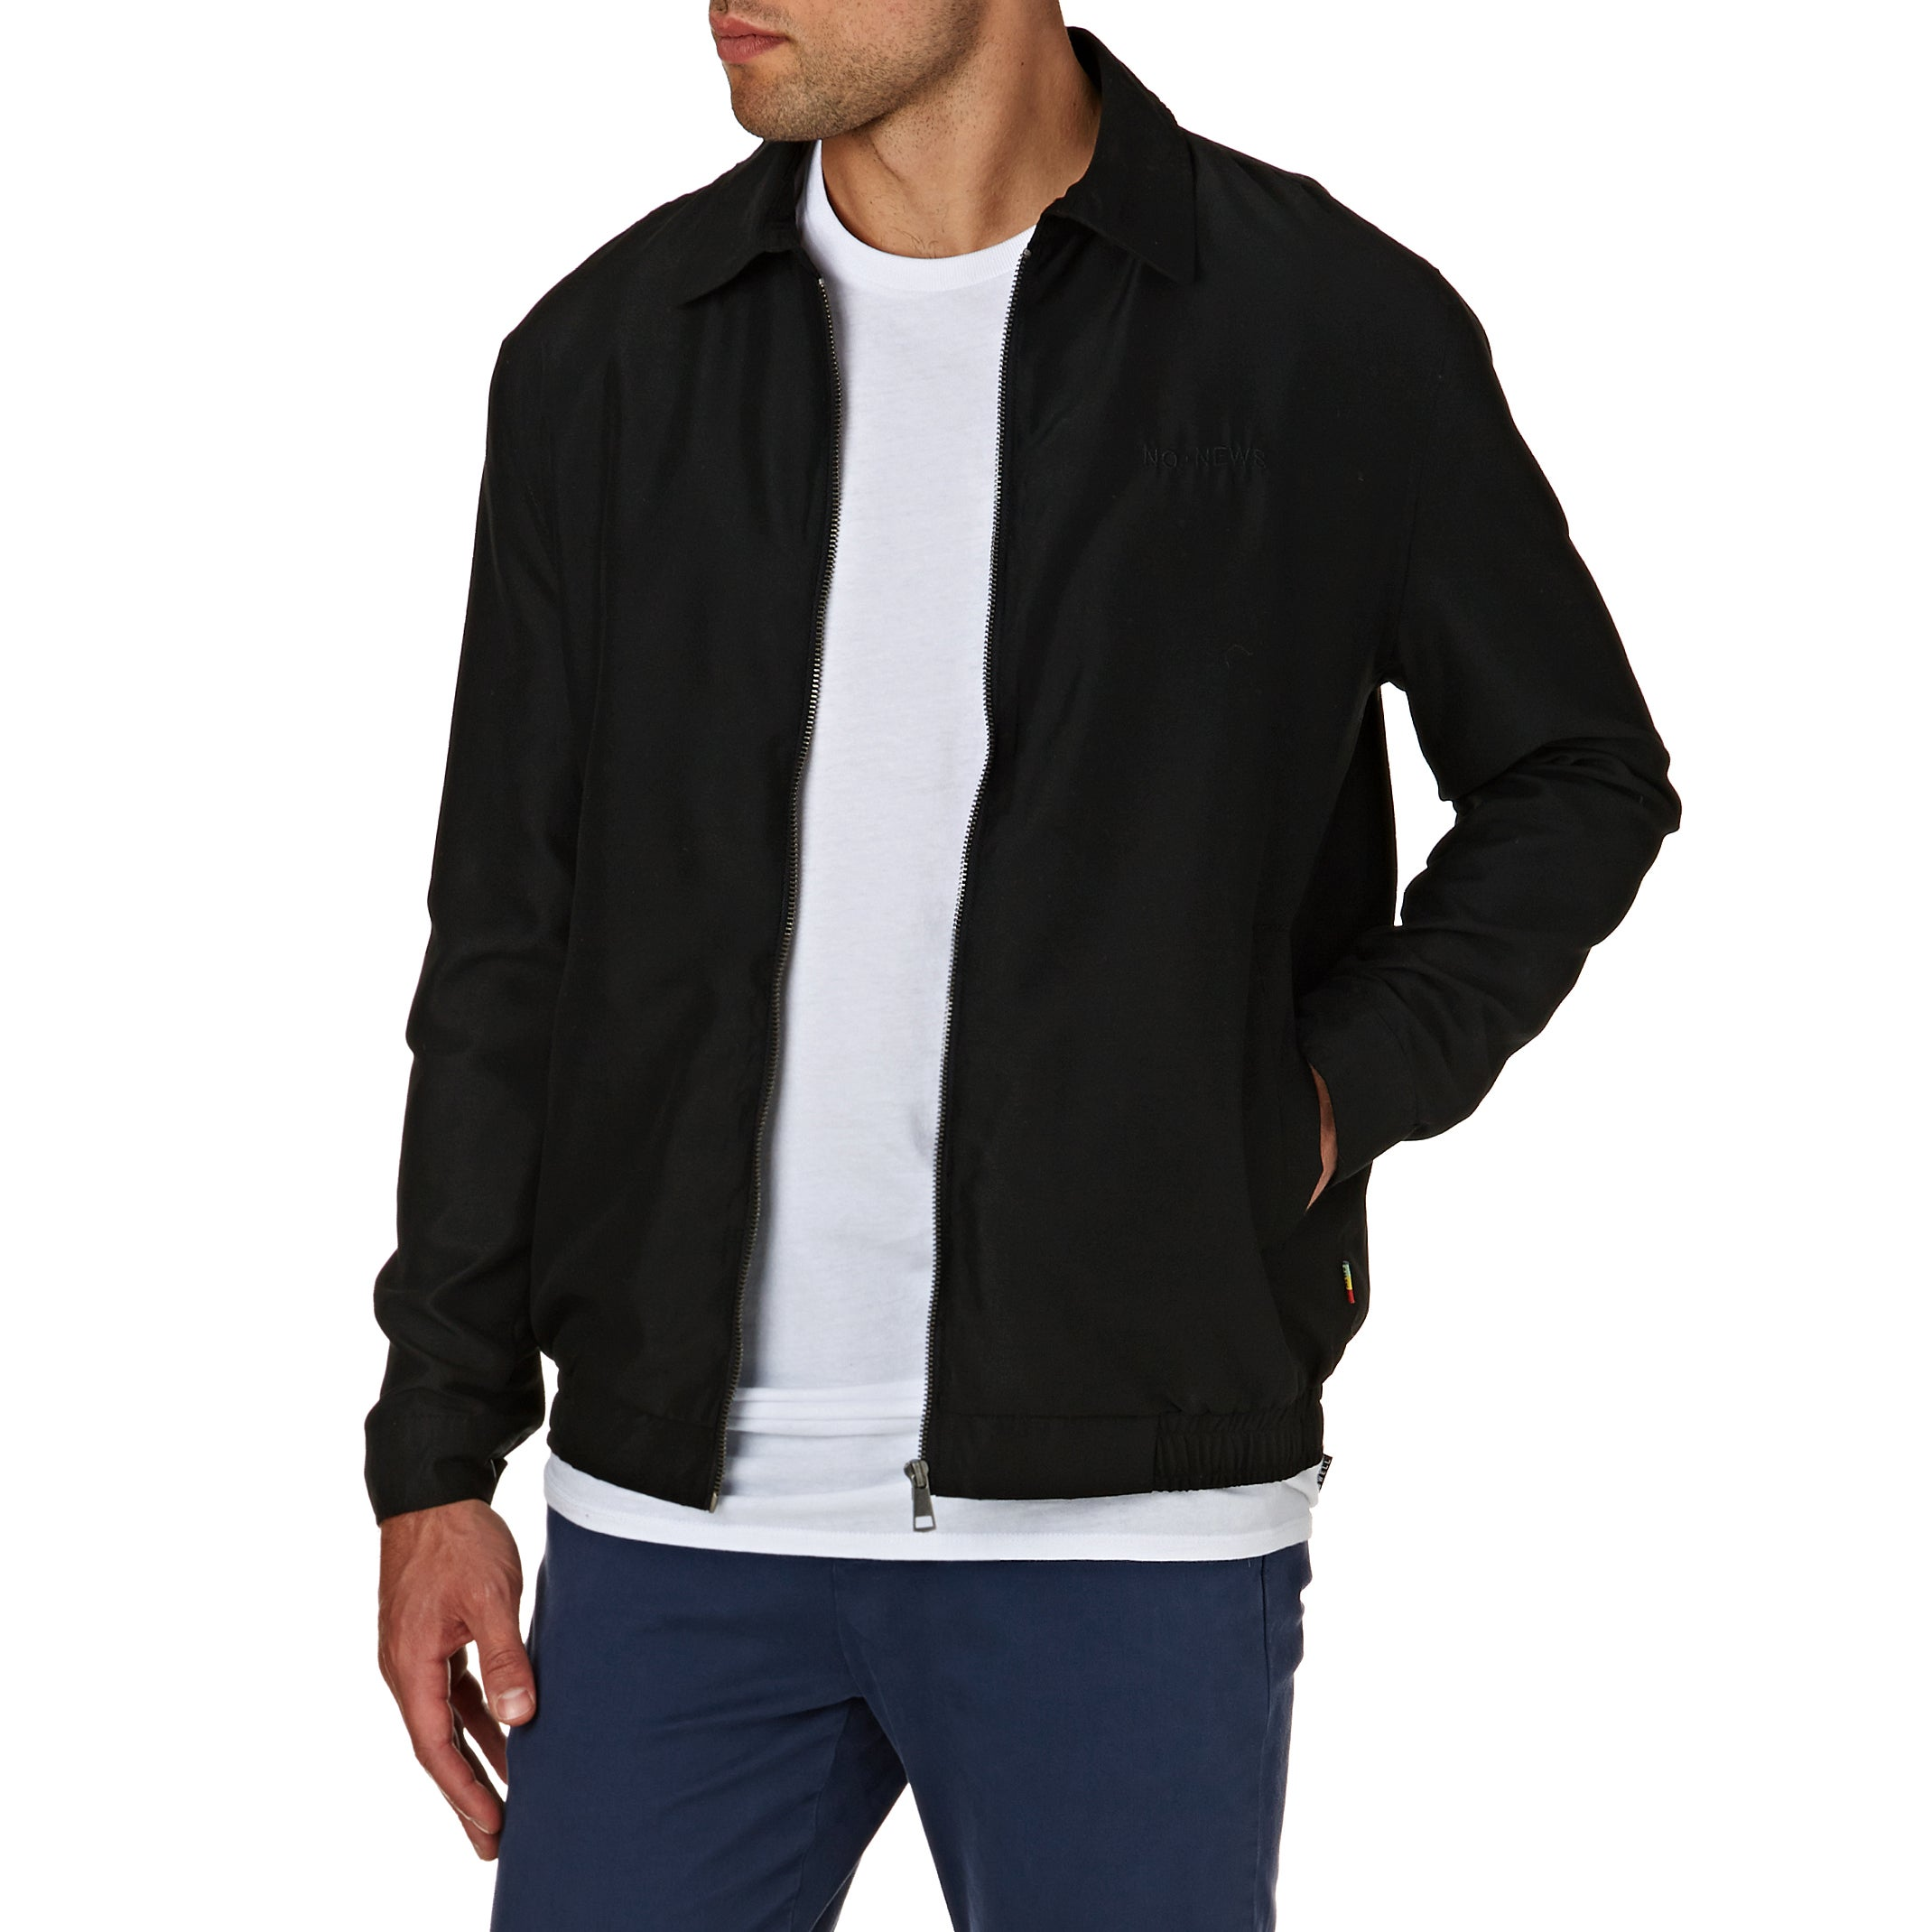 No News Vibrations Jacke - Black